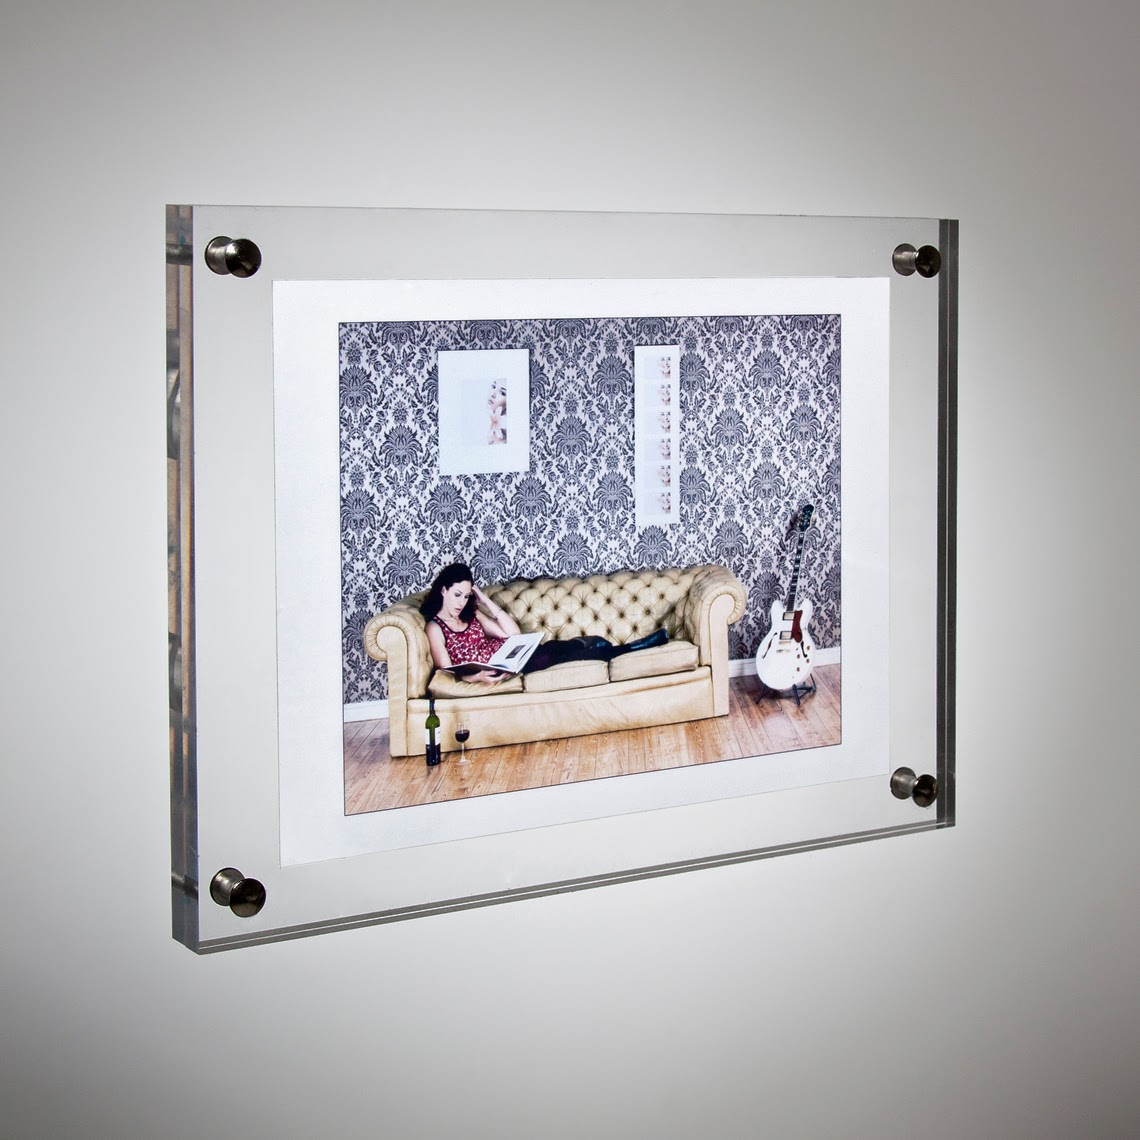 Museum Quality Picture Framing |custom picture mats | hand crafted ...